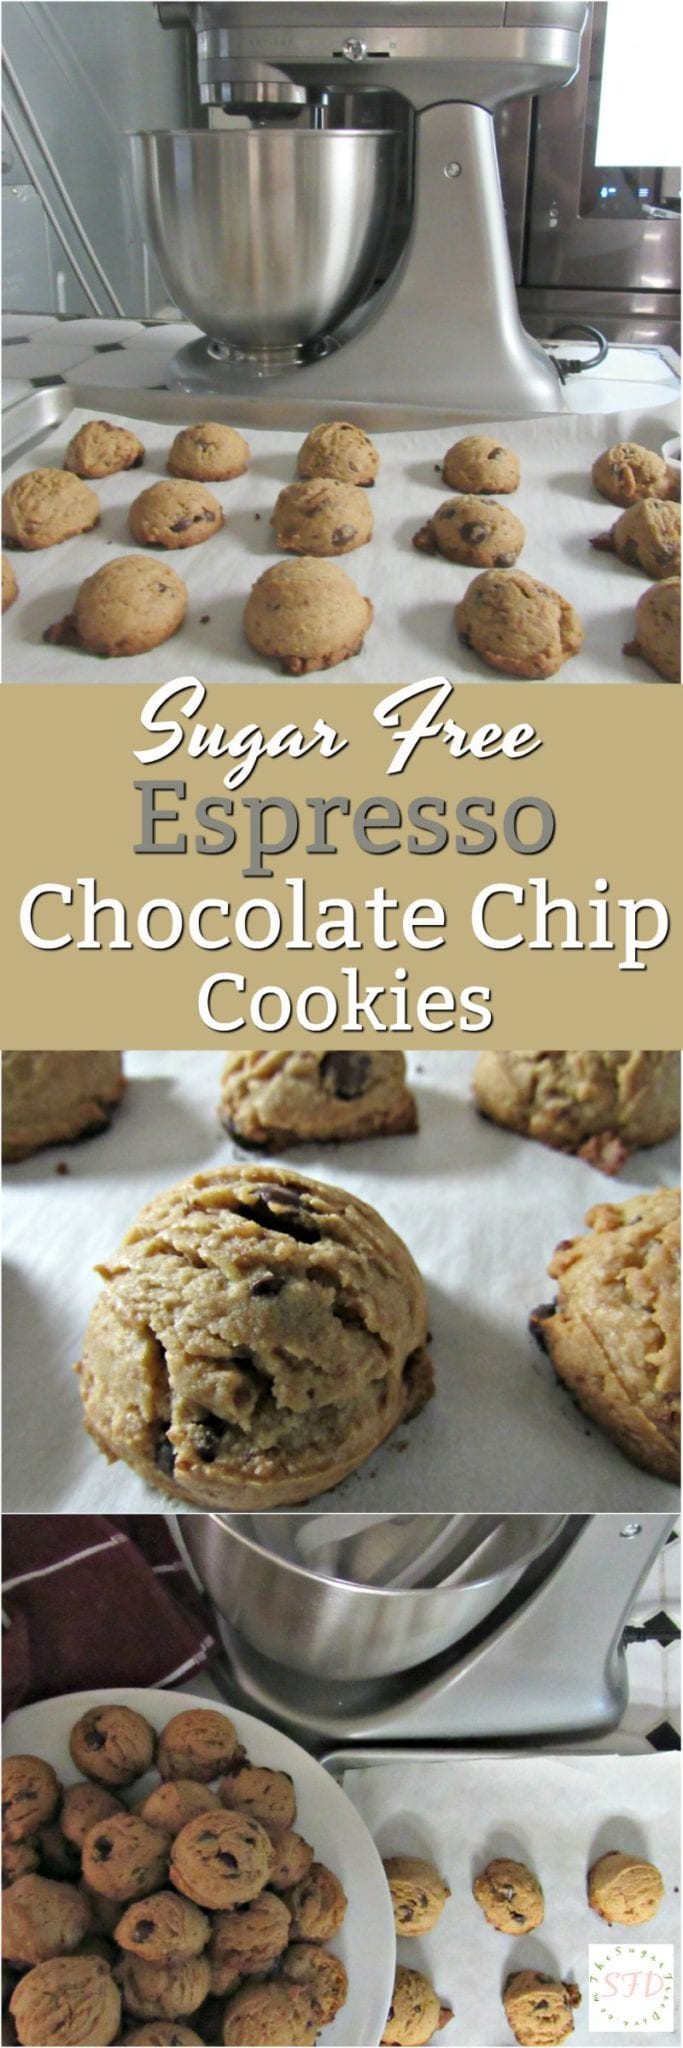 Sugar Free Espresso Chocolate Chip Cookies @BestBuy @KitchenAidUSA #ad